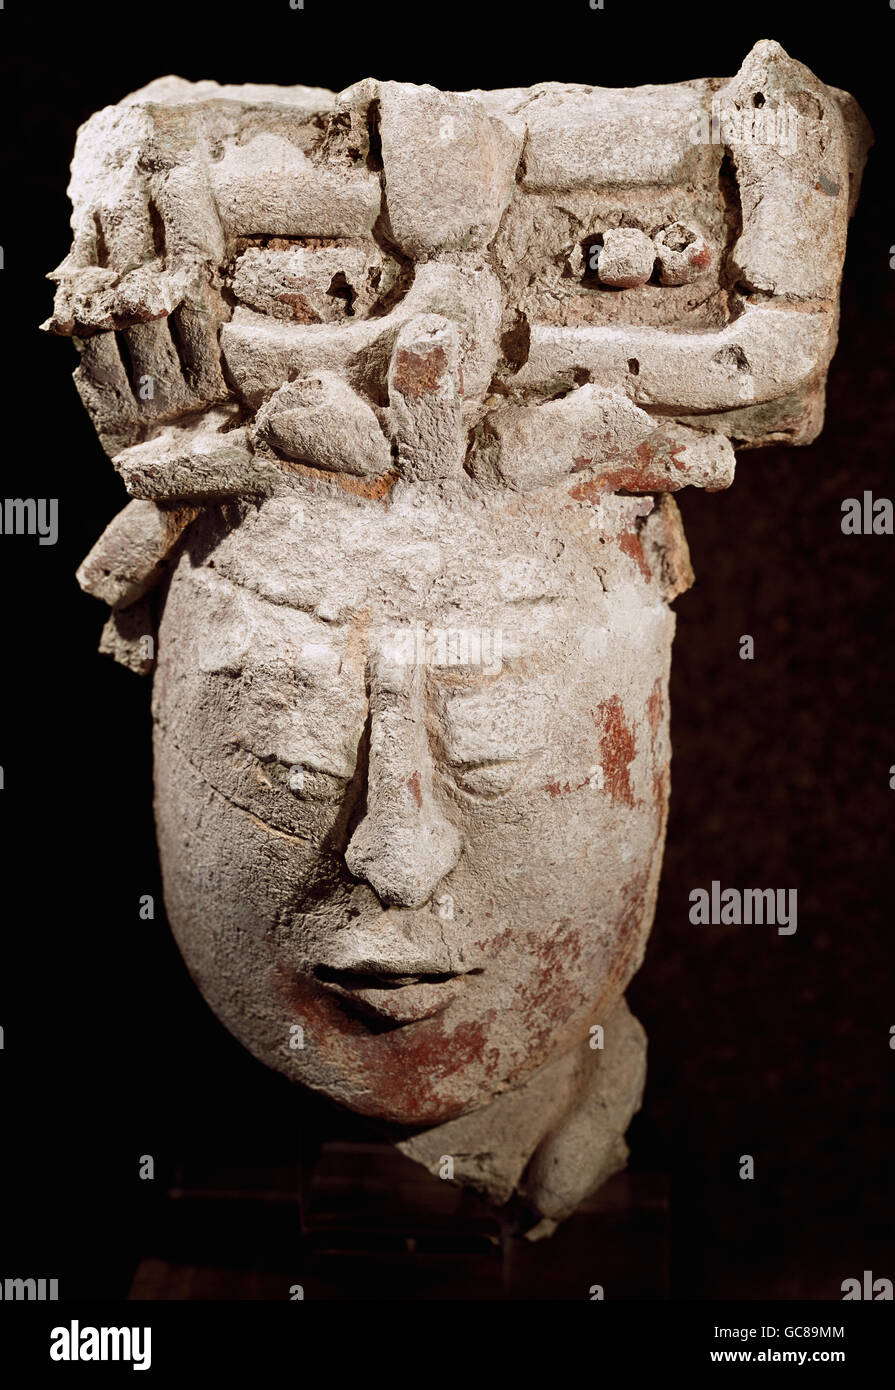 archaeology / archeology, Maya civilization, head, stucco, height 38.7 cm, Palenque, 500 - 800 AD, Stolper Galleries, - Stock Image